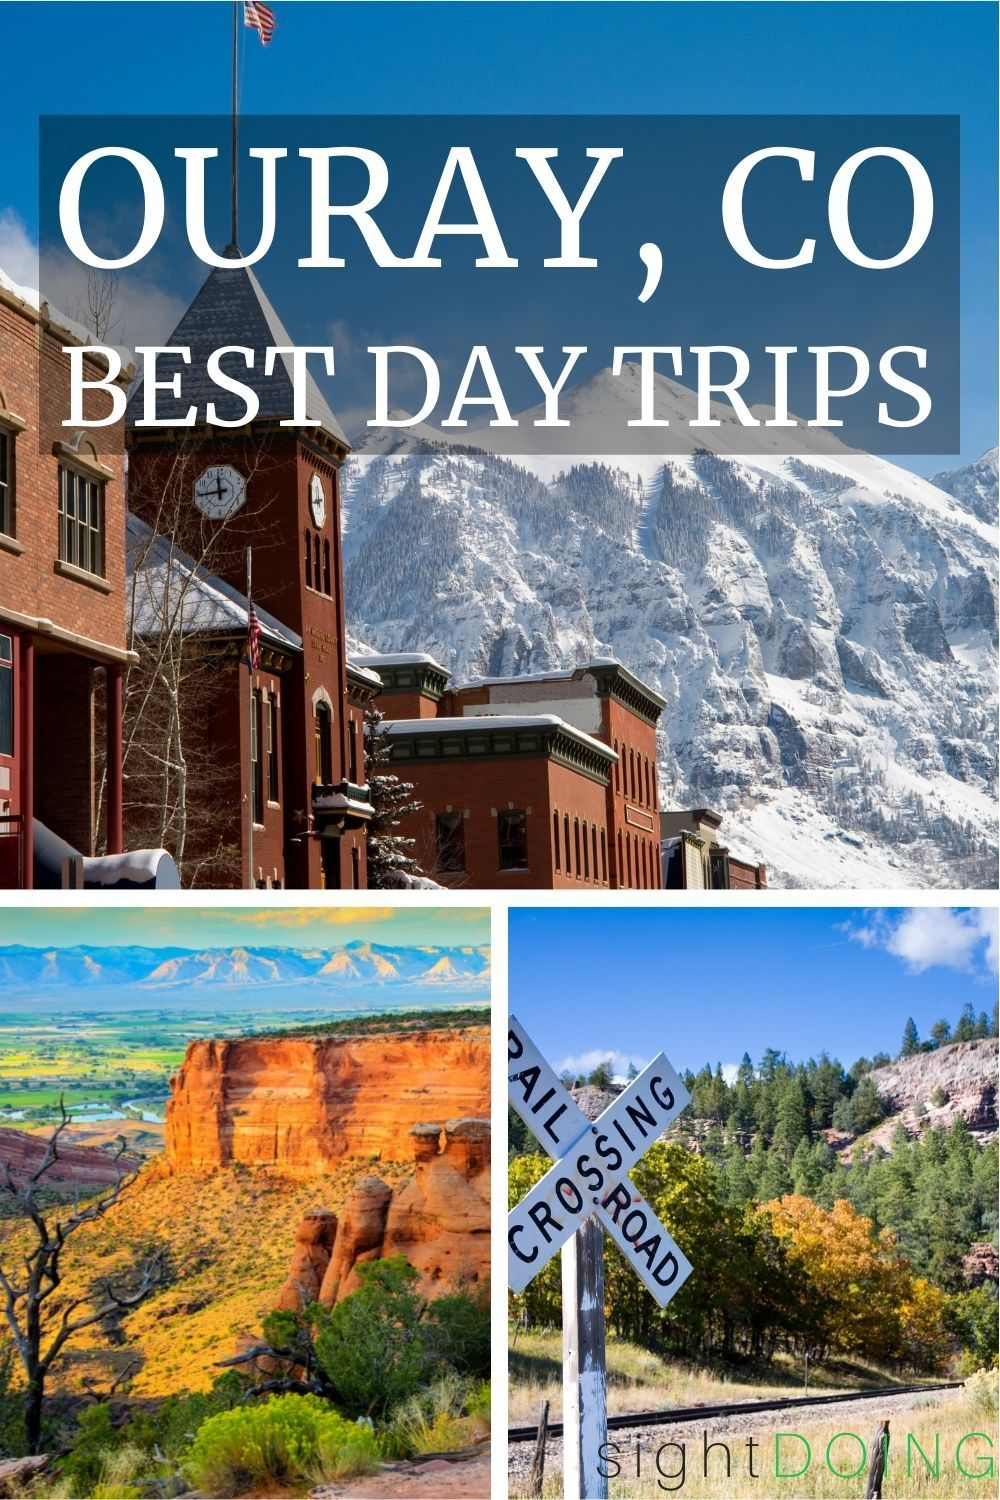 best day trips from ouray colorado pinterest